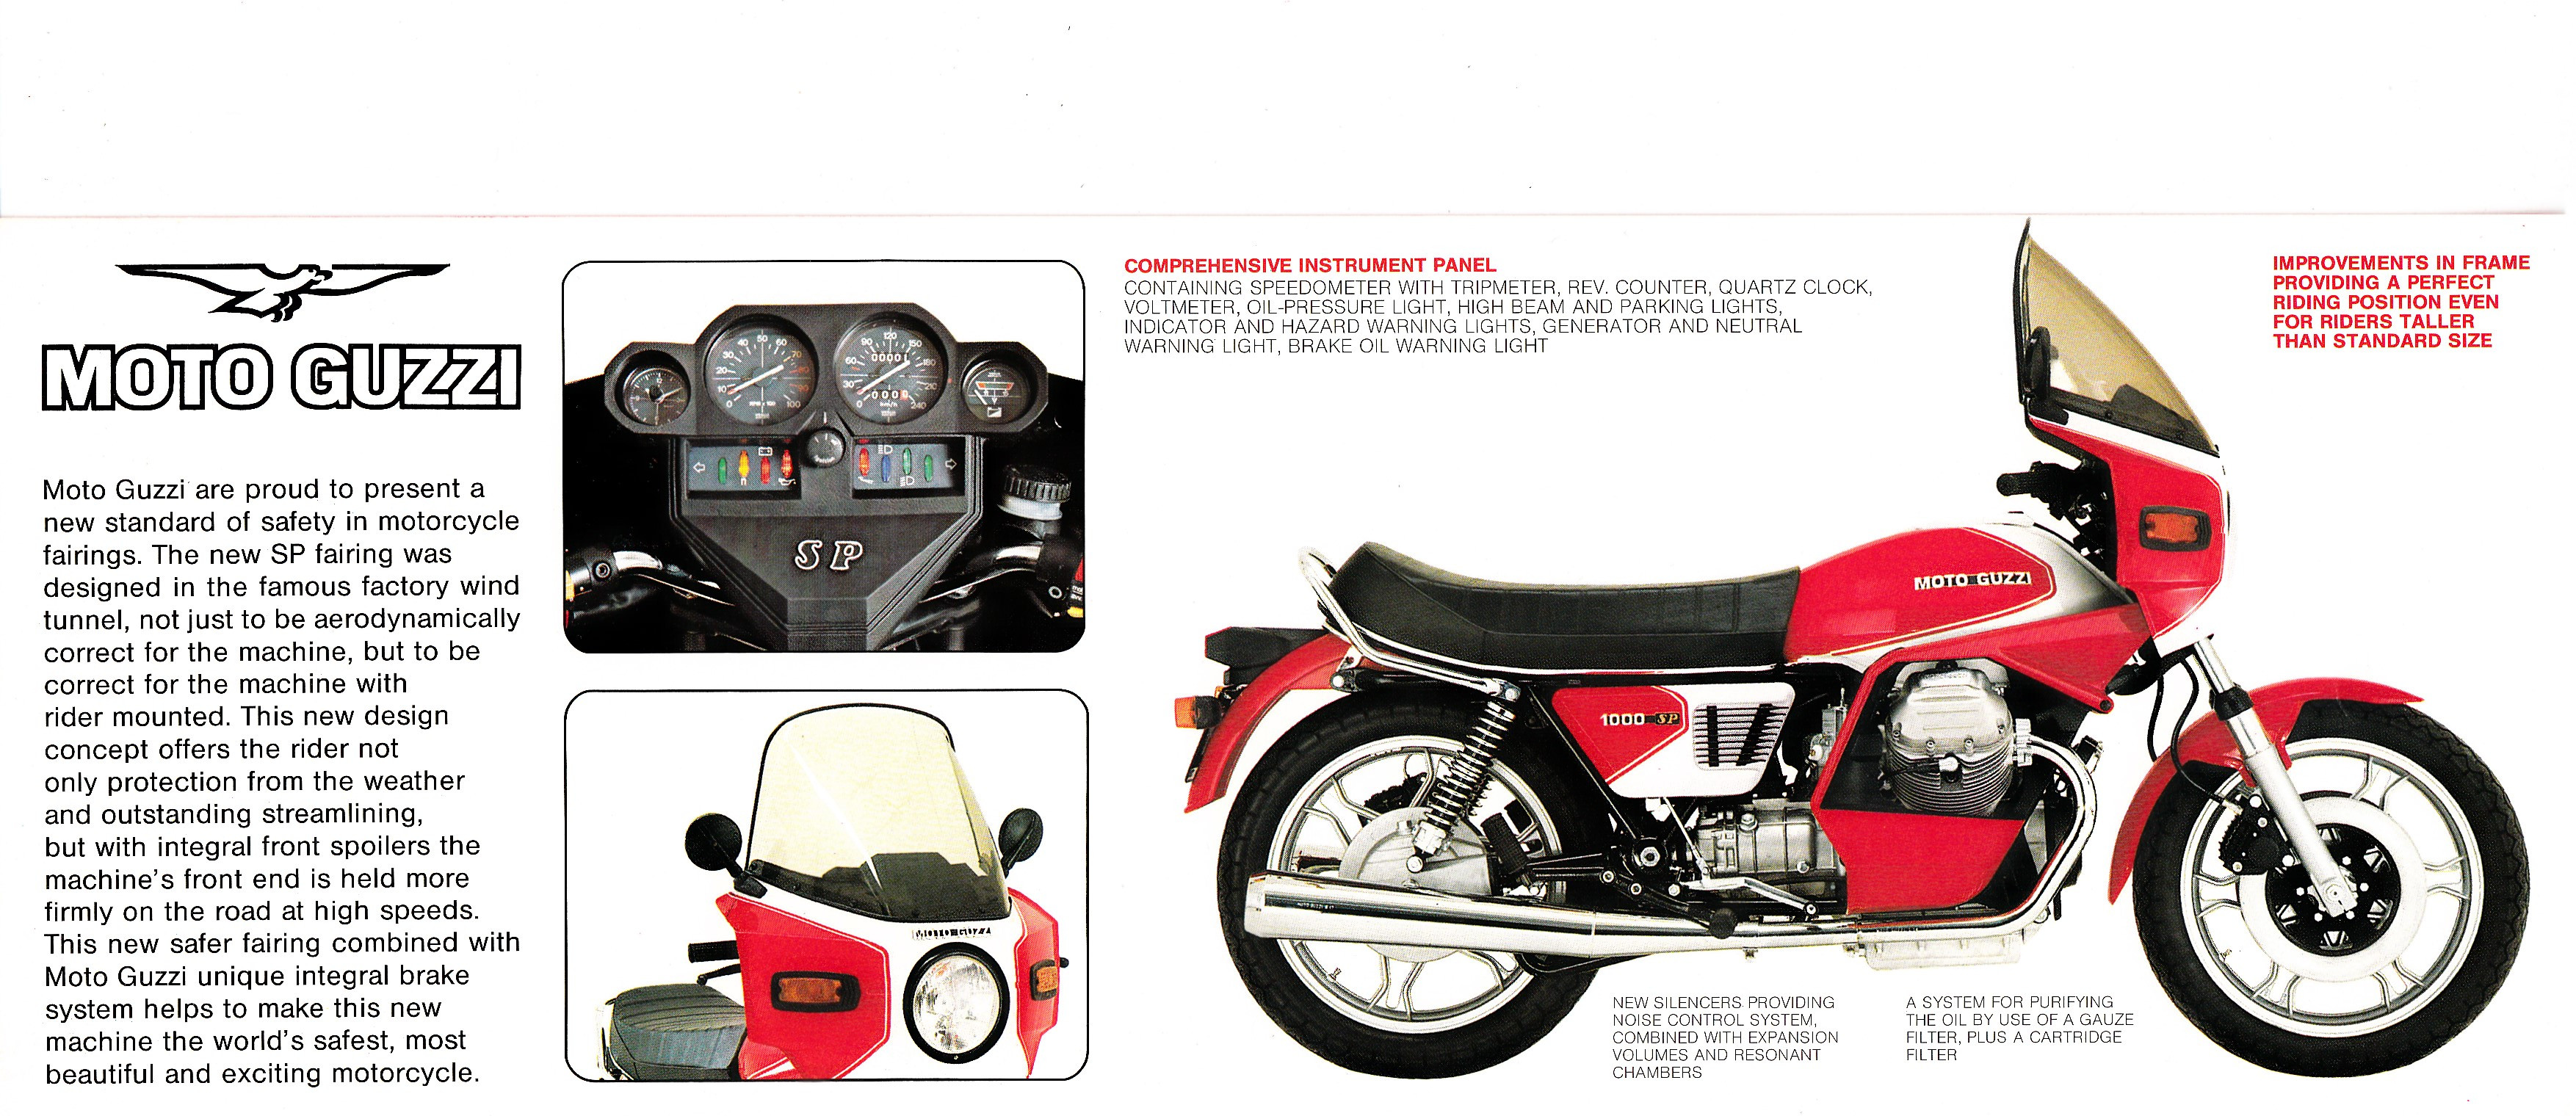 Brochure - Moto Guzzi 1000 SP (red, folded style brochure)